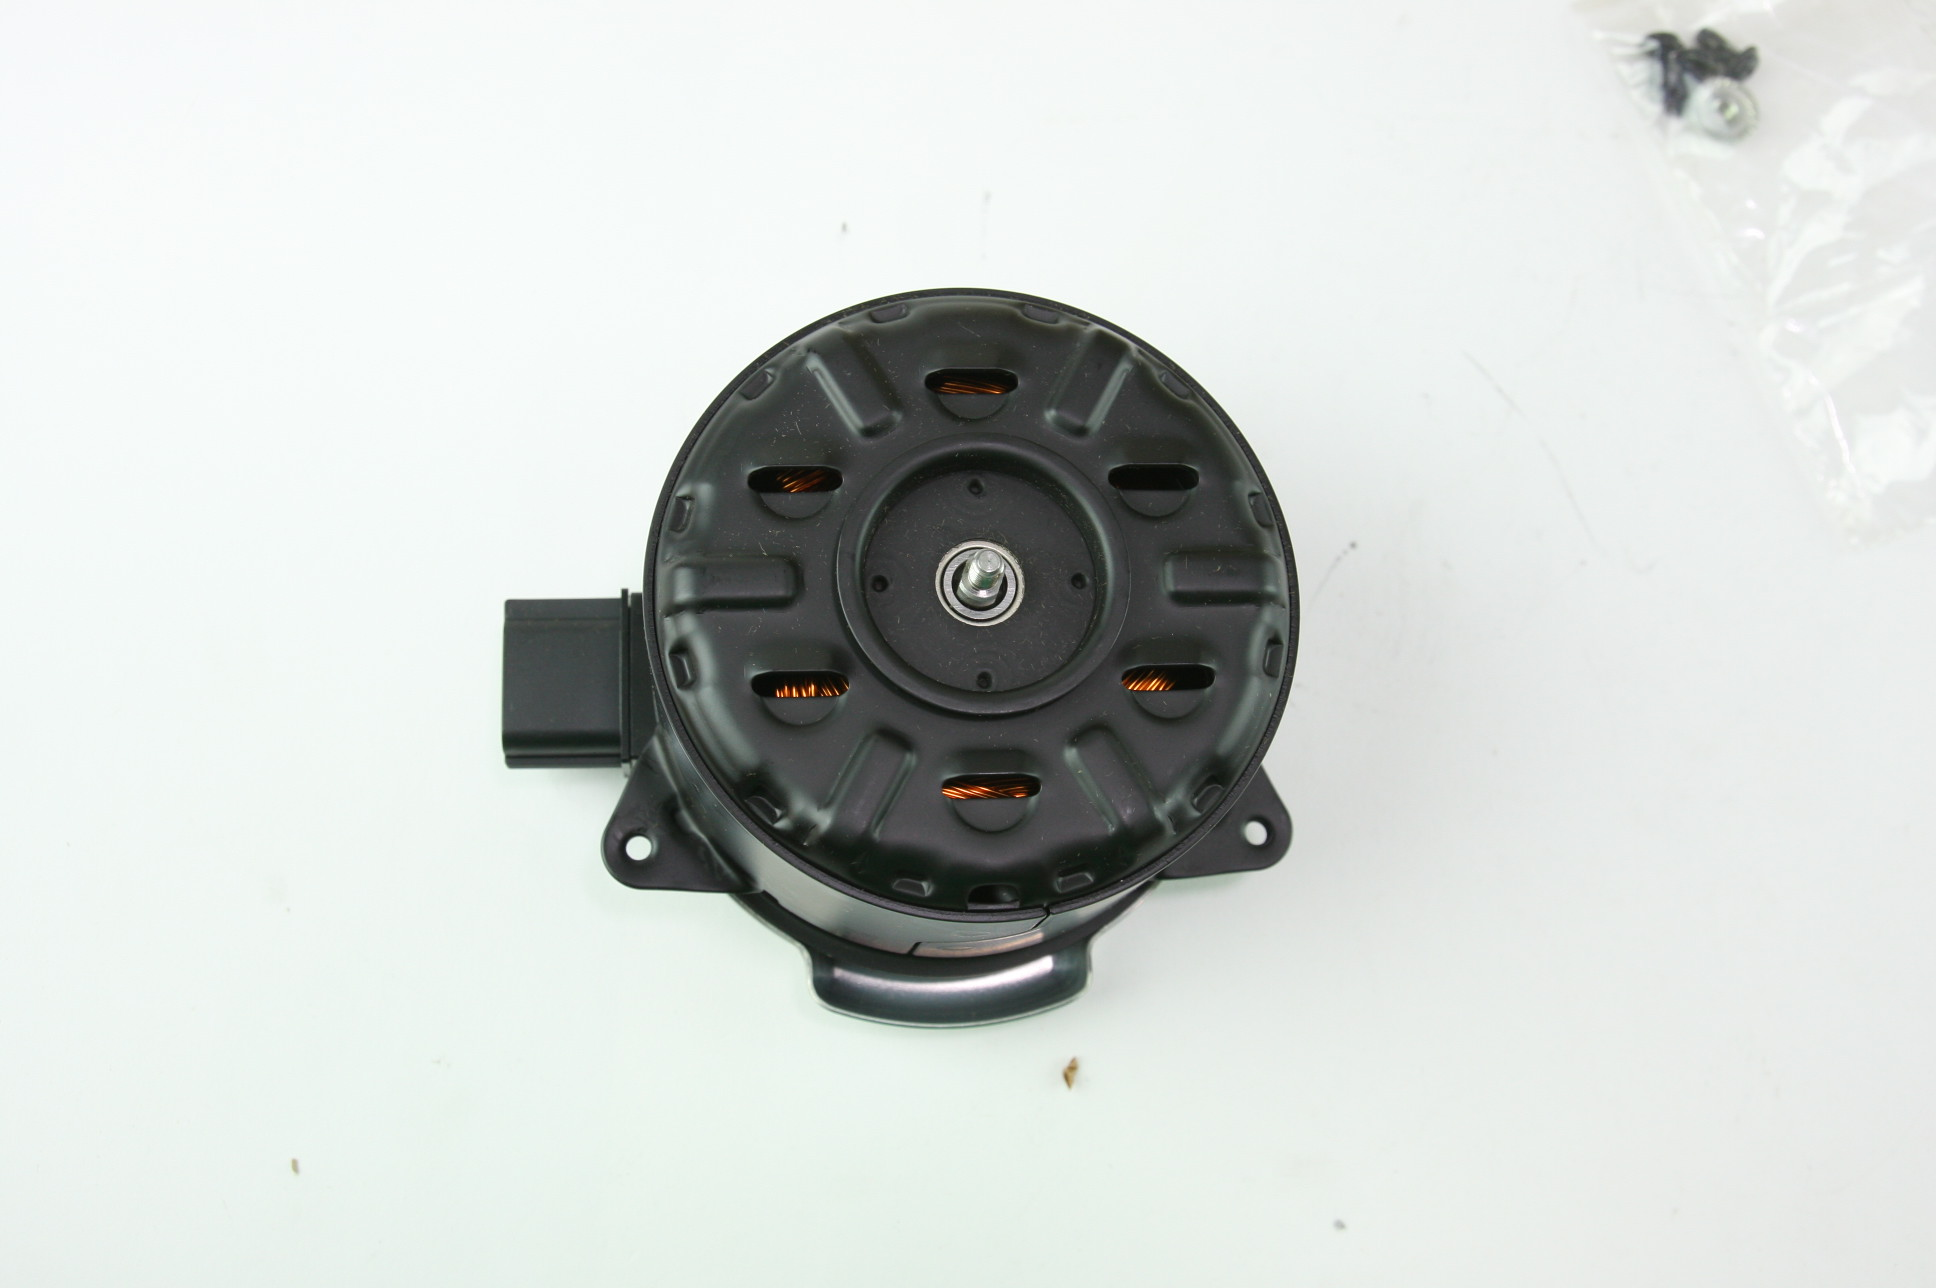 New OEM GM 19351719 Cadillac 09-14 CTS Engine Cooling Fan Motor Free Shipping - image 3